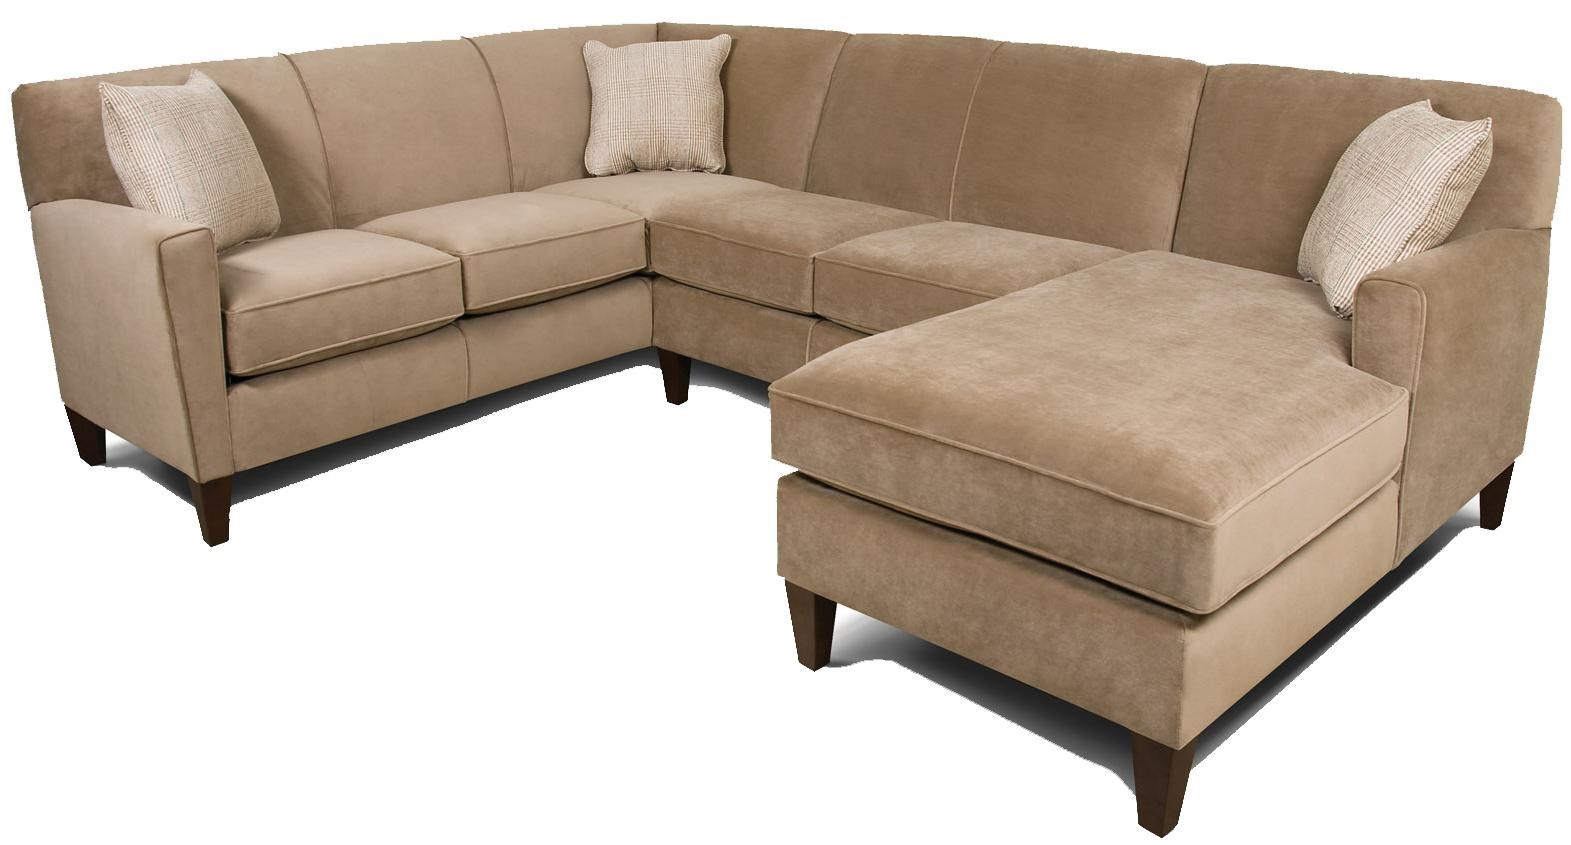 England Collegedale Contemporary 3 Piece Sectional Sofa With RAF Chaise